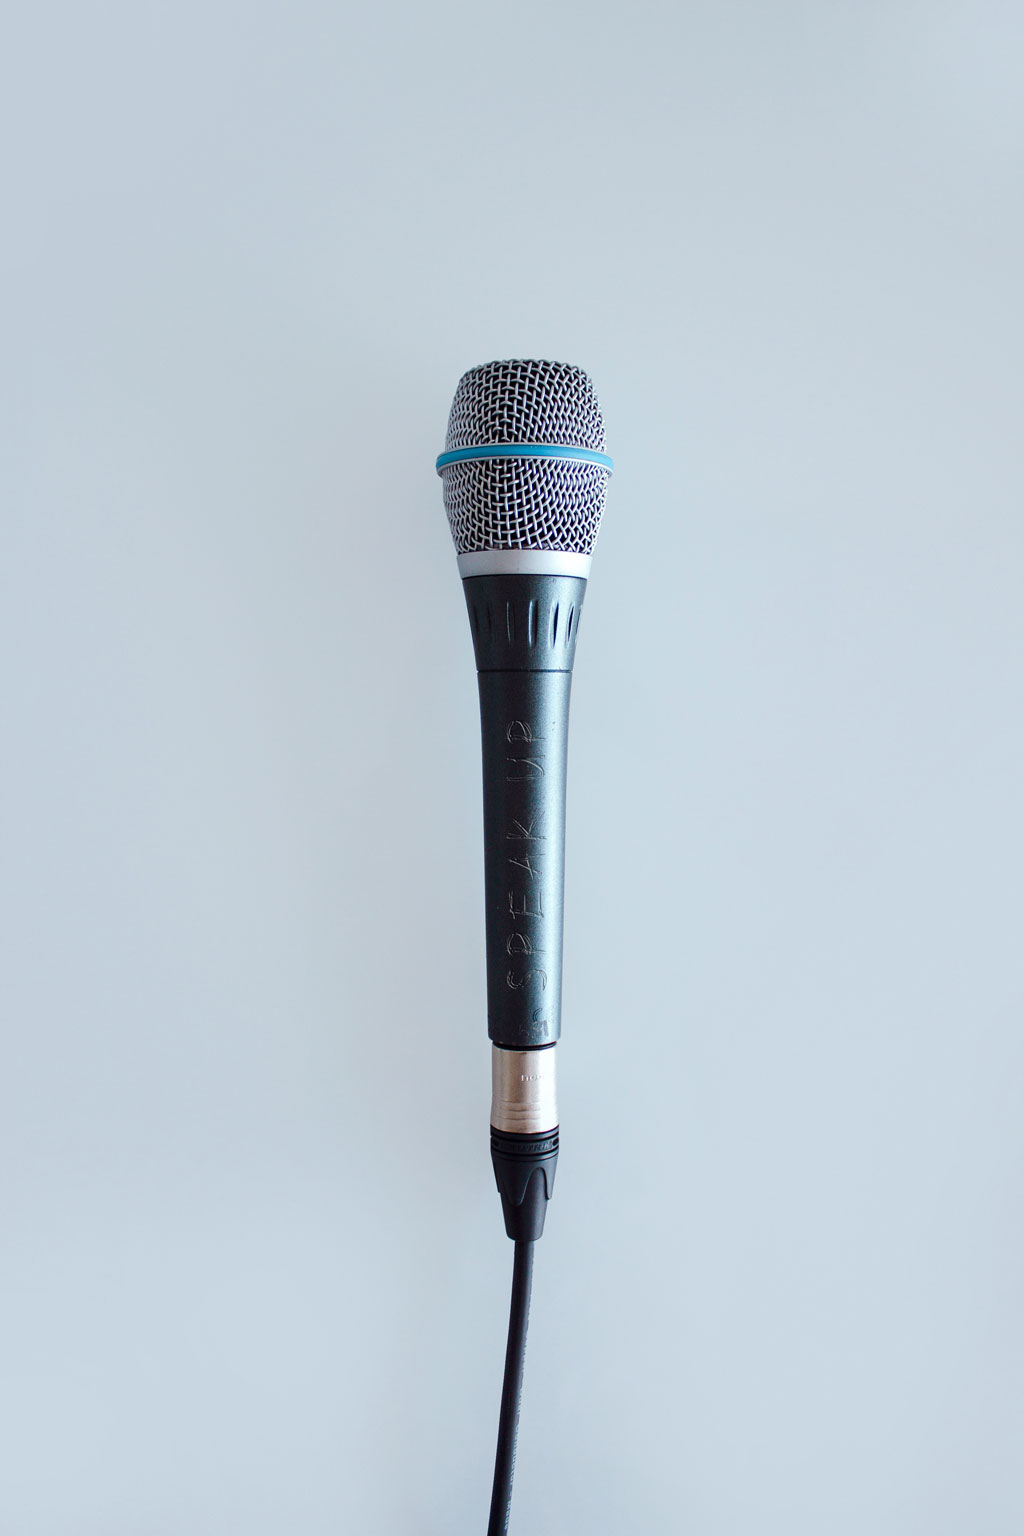 microphone with cord against pastel blue background